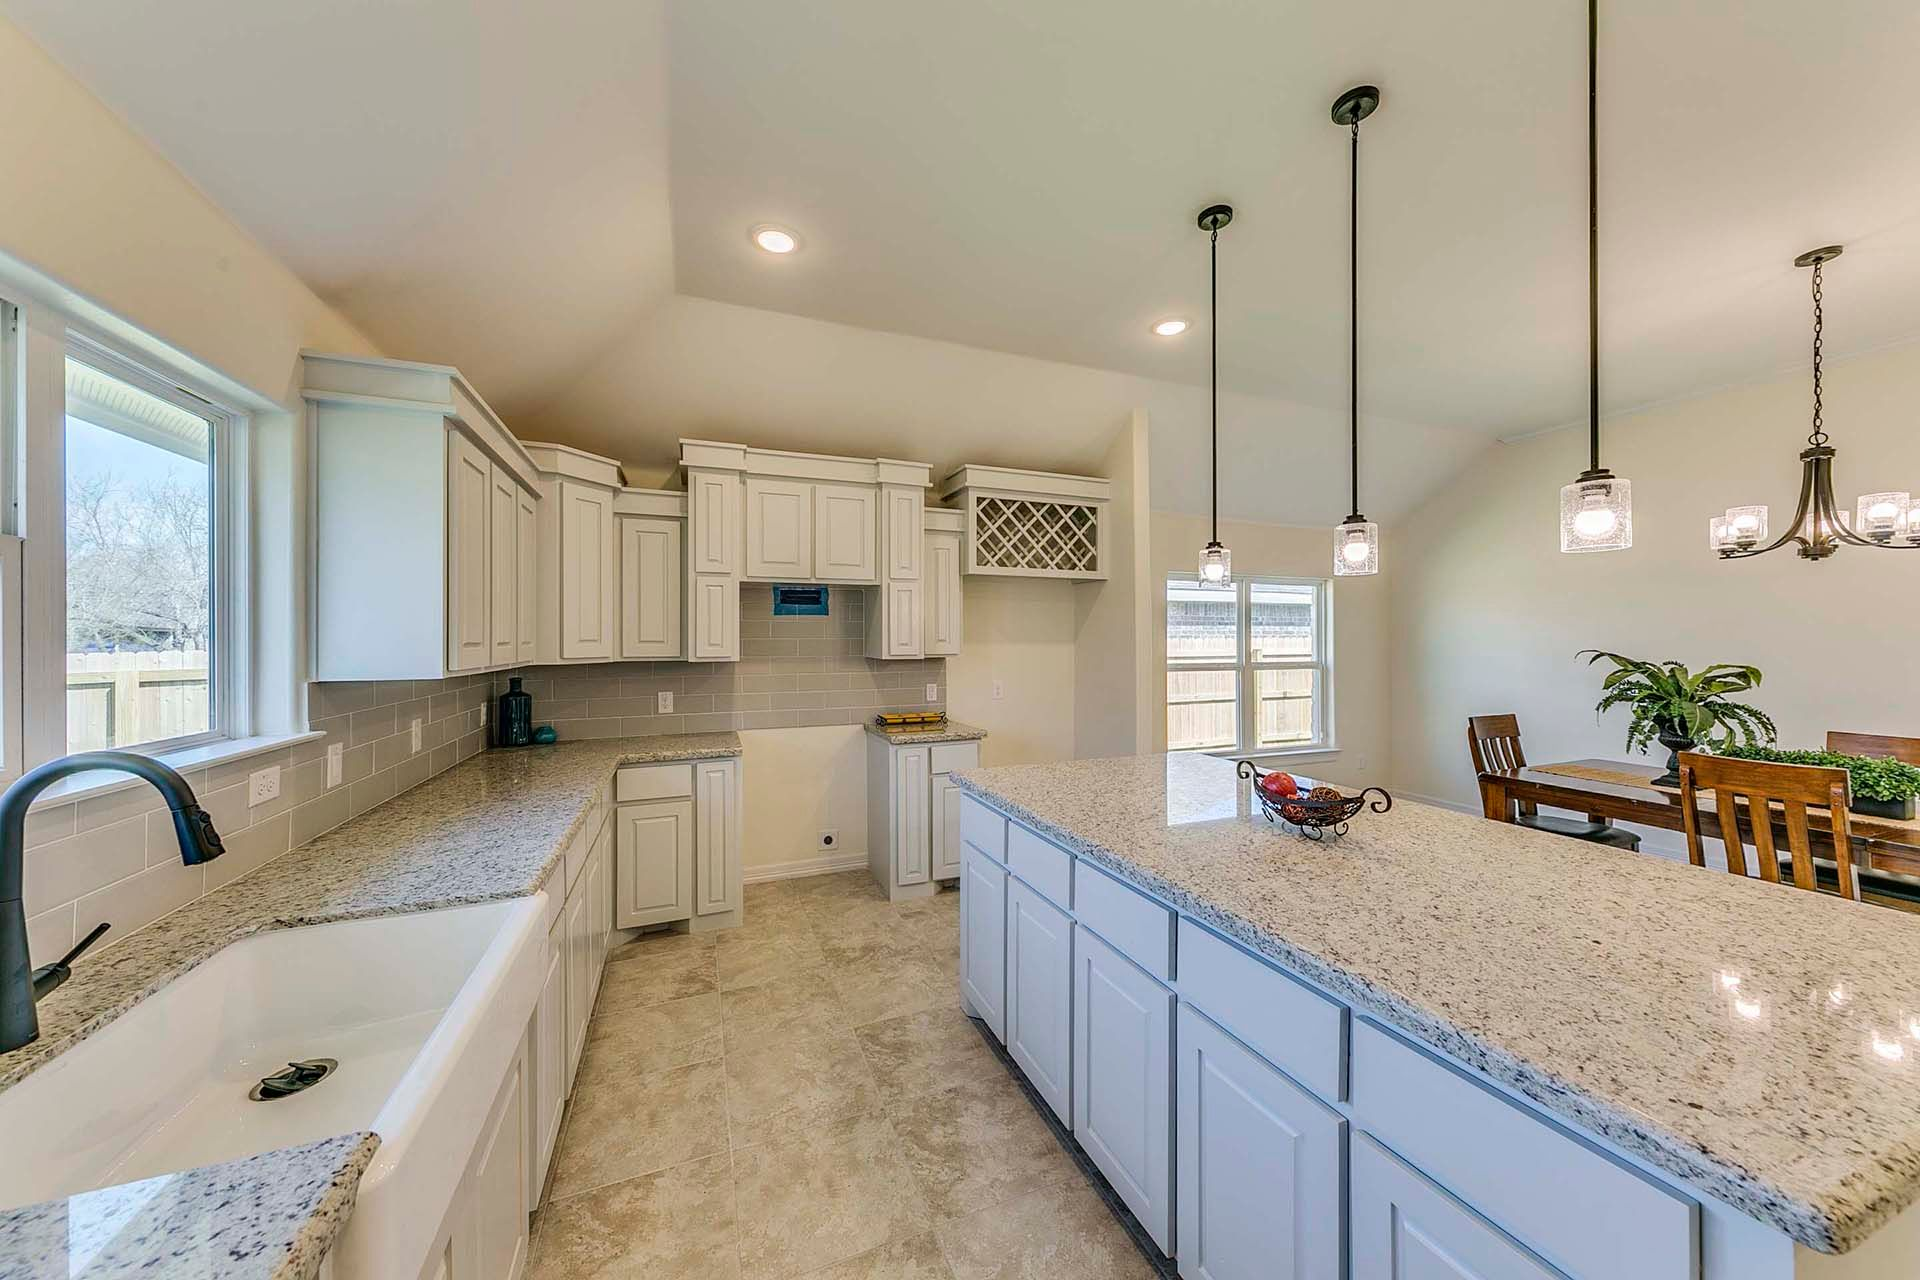 Kitchen featured in the Barceledo II By WestWind Homes in Rio Grande Valley, TX